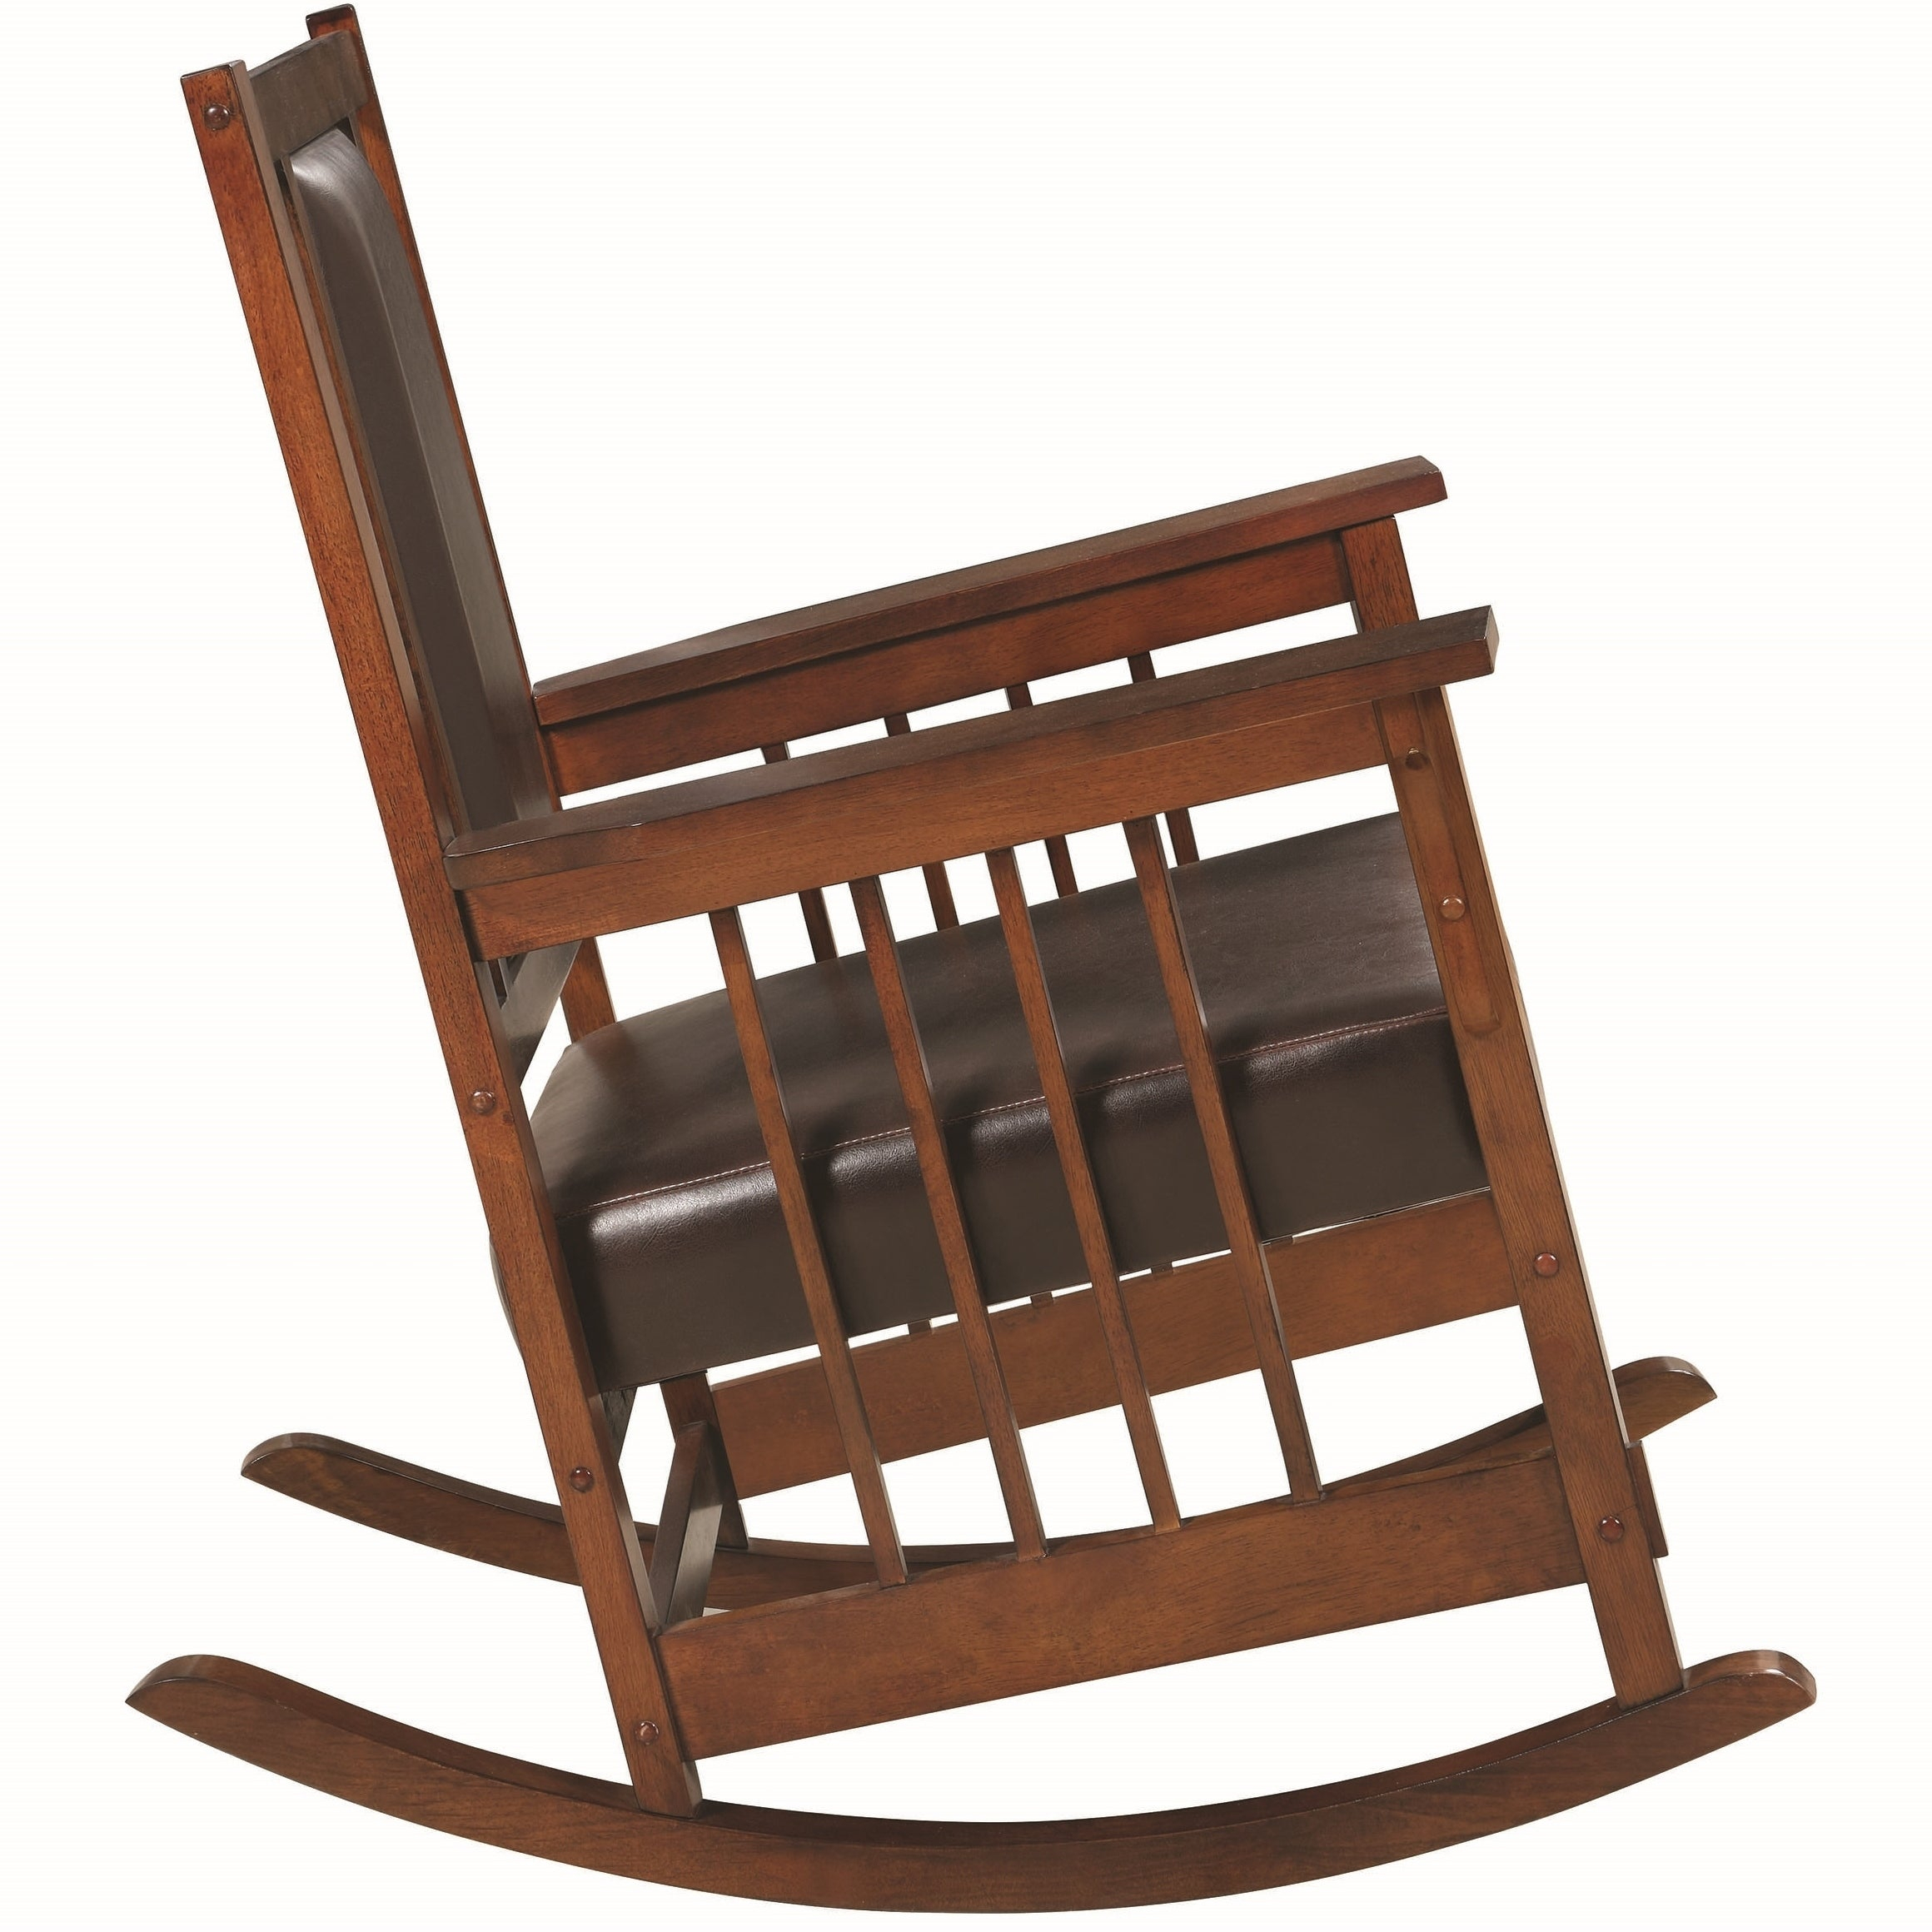 Mission Design Wood Rocking Chair With Brown Leather Seat Regarding Mission Design Wood Rocking Chairs With Brown Leather Seat (#13 of 20)